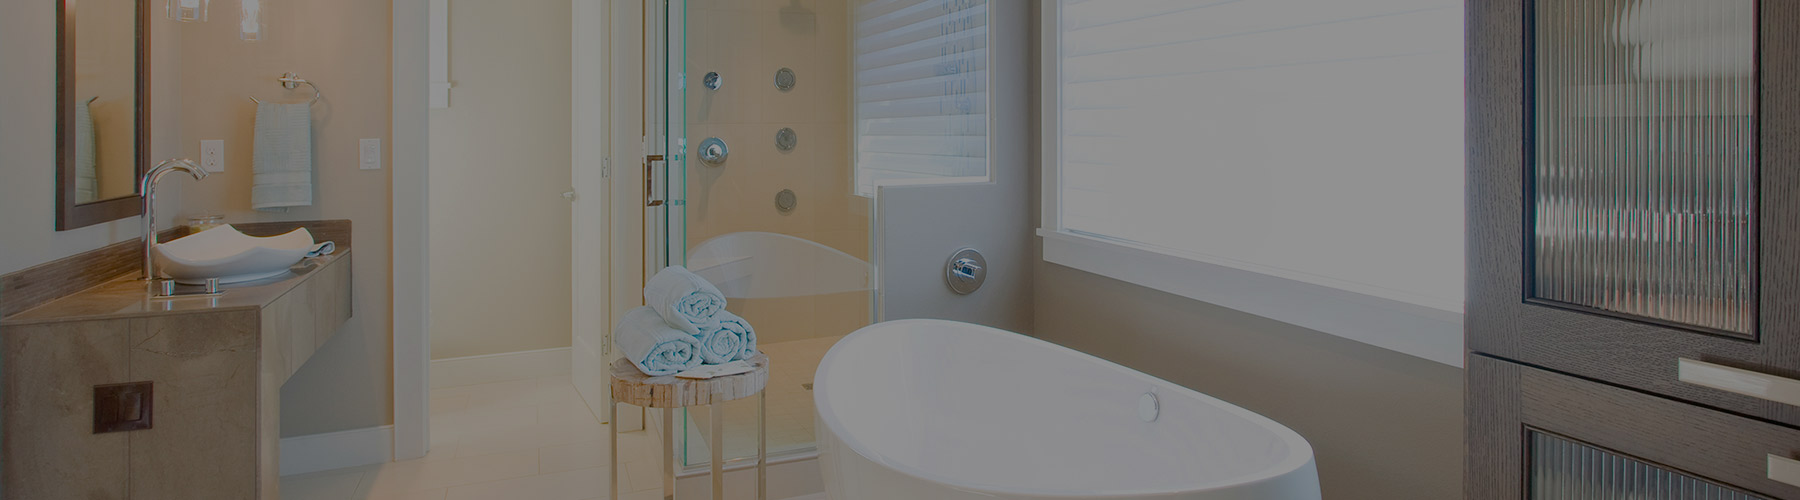 Bathroom Remodeling Services Property full bathroom remodel - south carolina bathroom remodeling